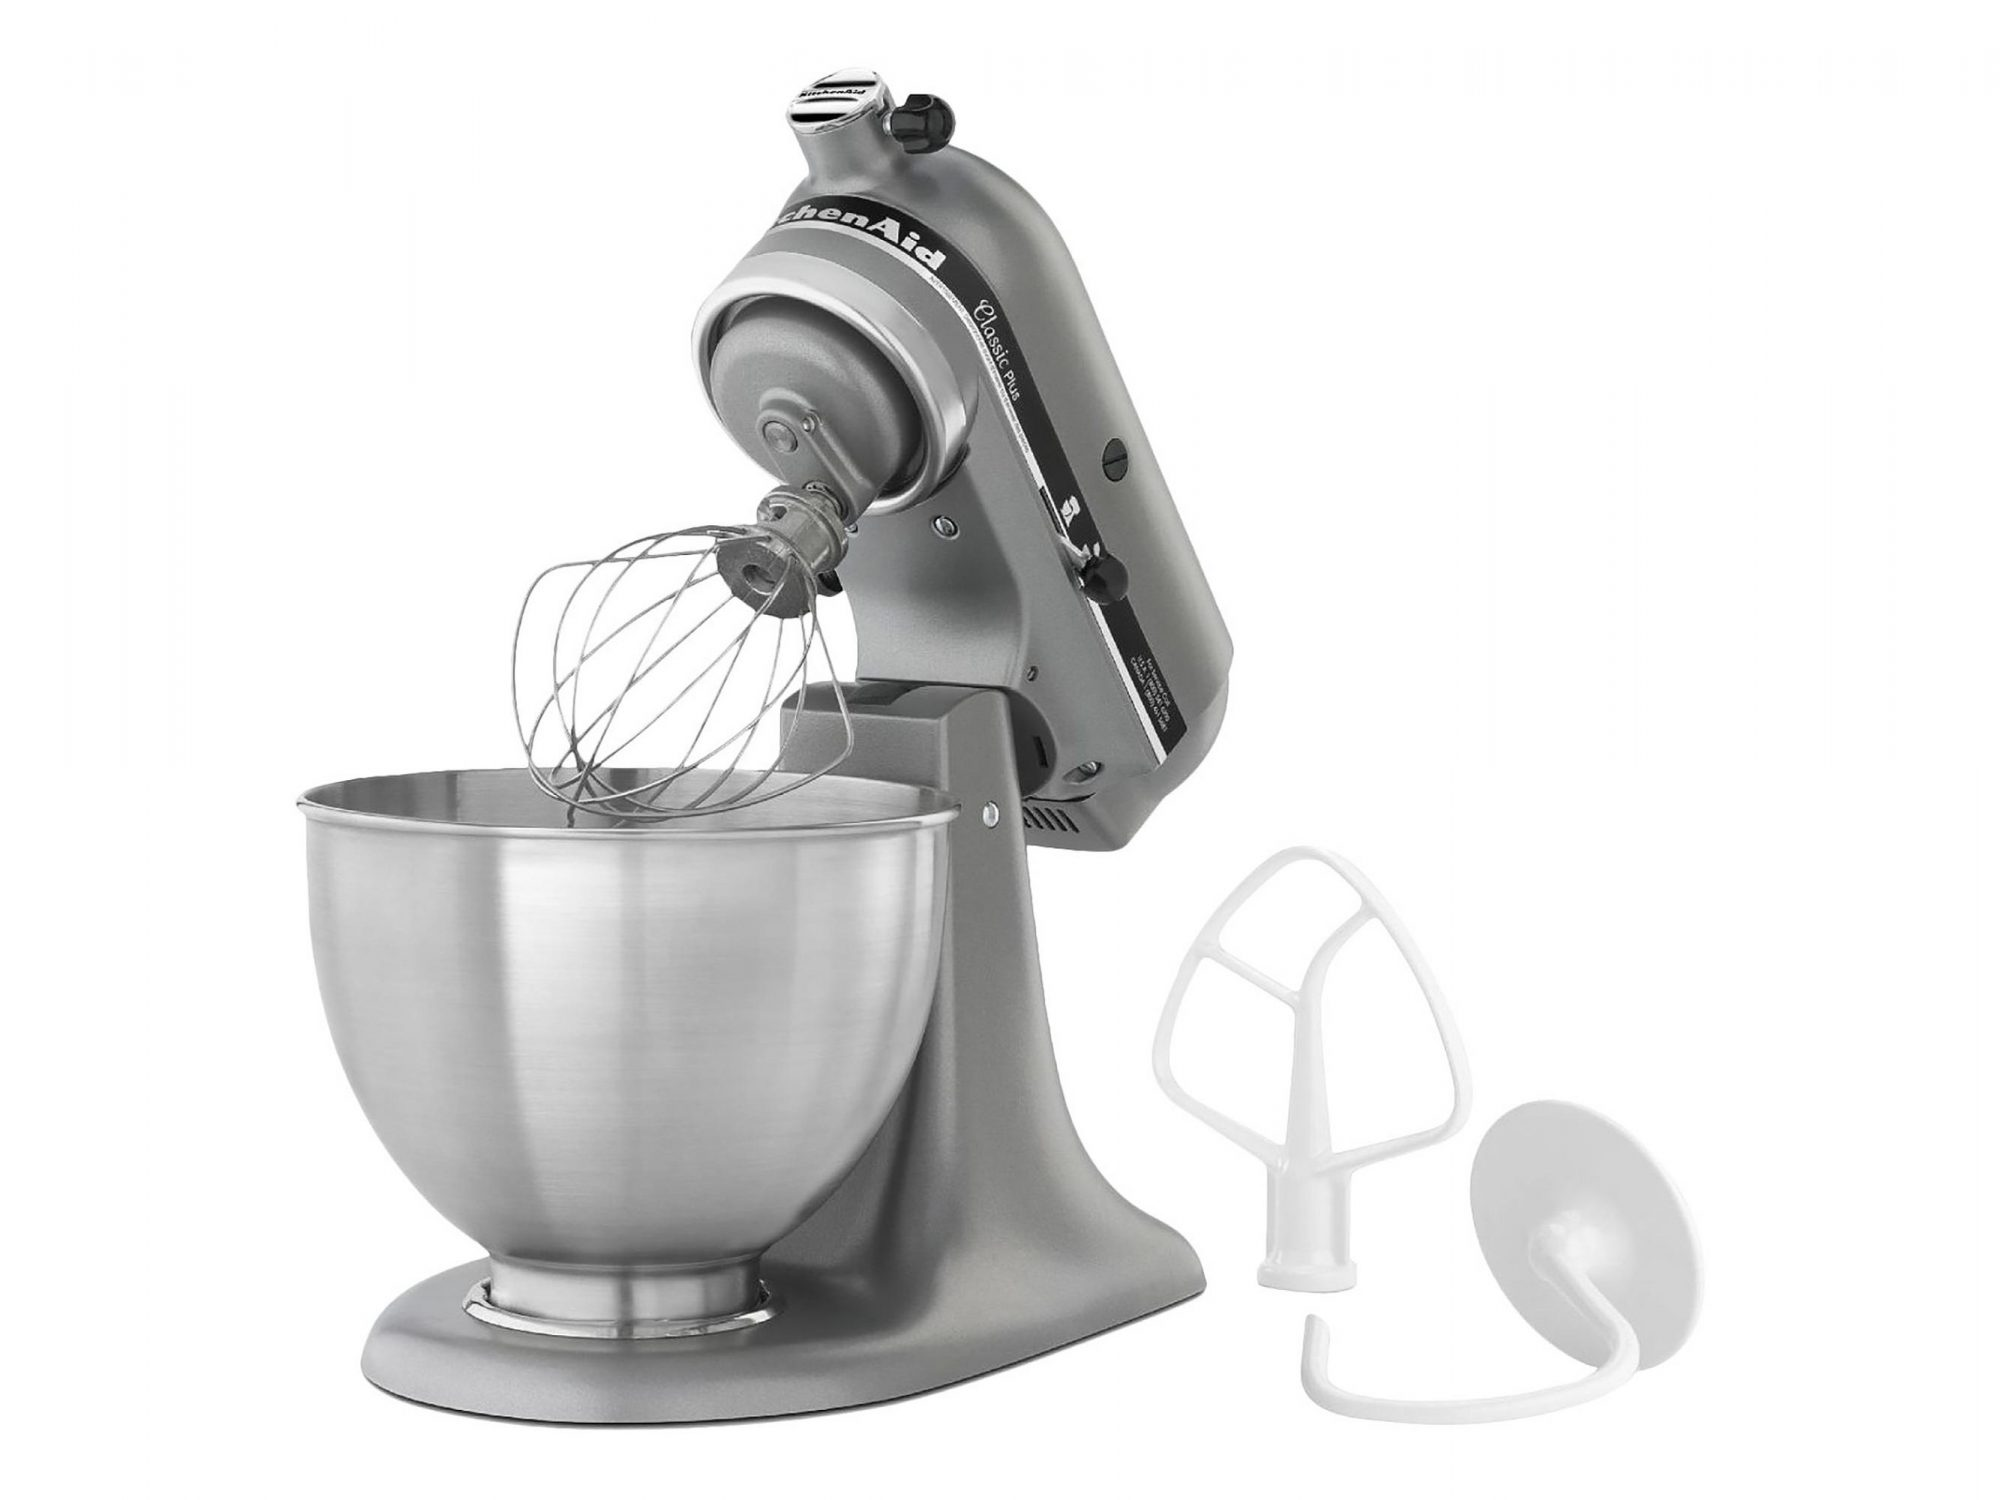 Target Slashed Prices on a Classic KitchenAid Mixer